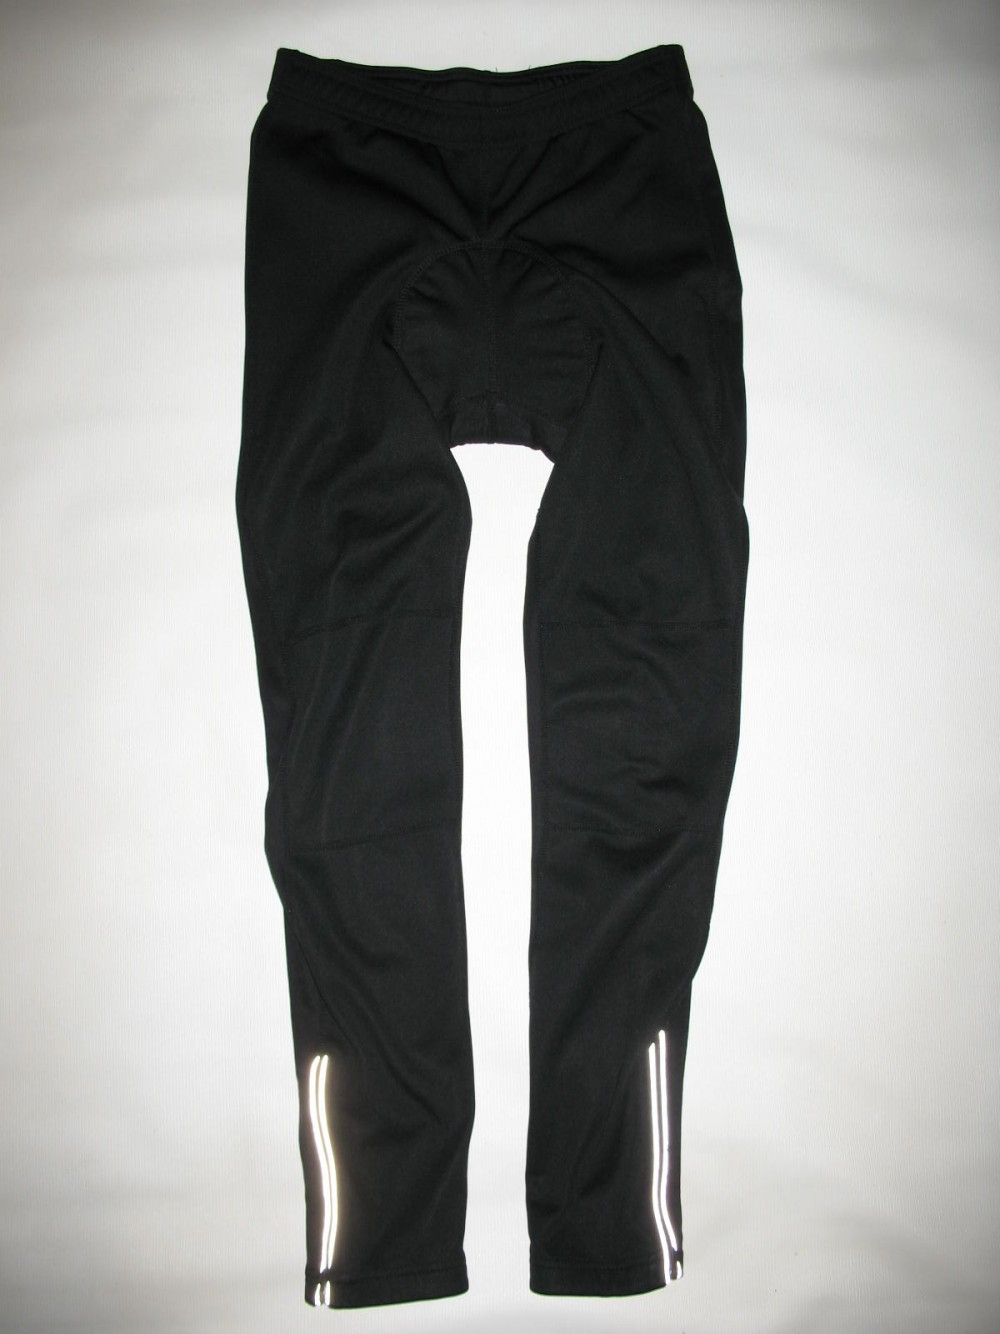 Велобрюки CRANE windstopper cycling pants (размер 48/M) - 18899